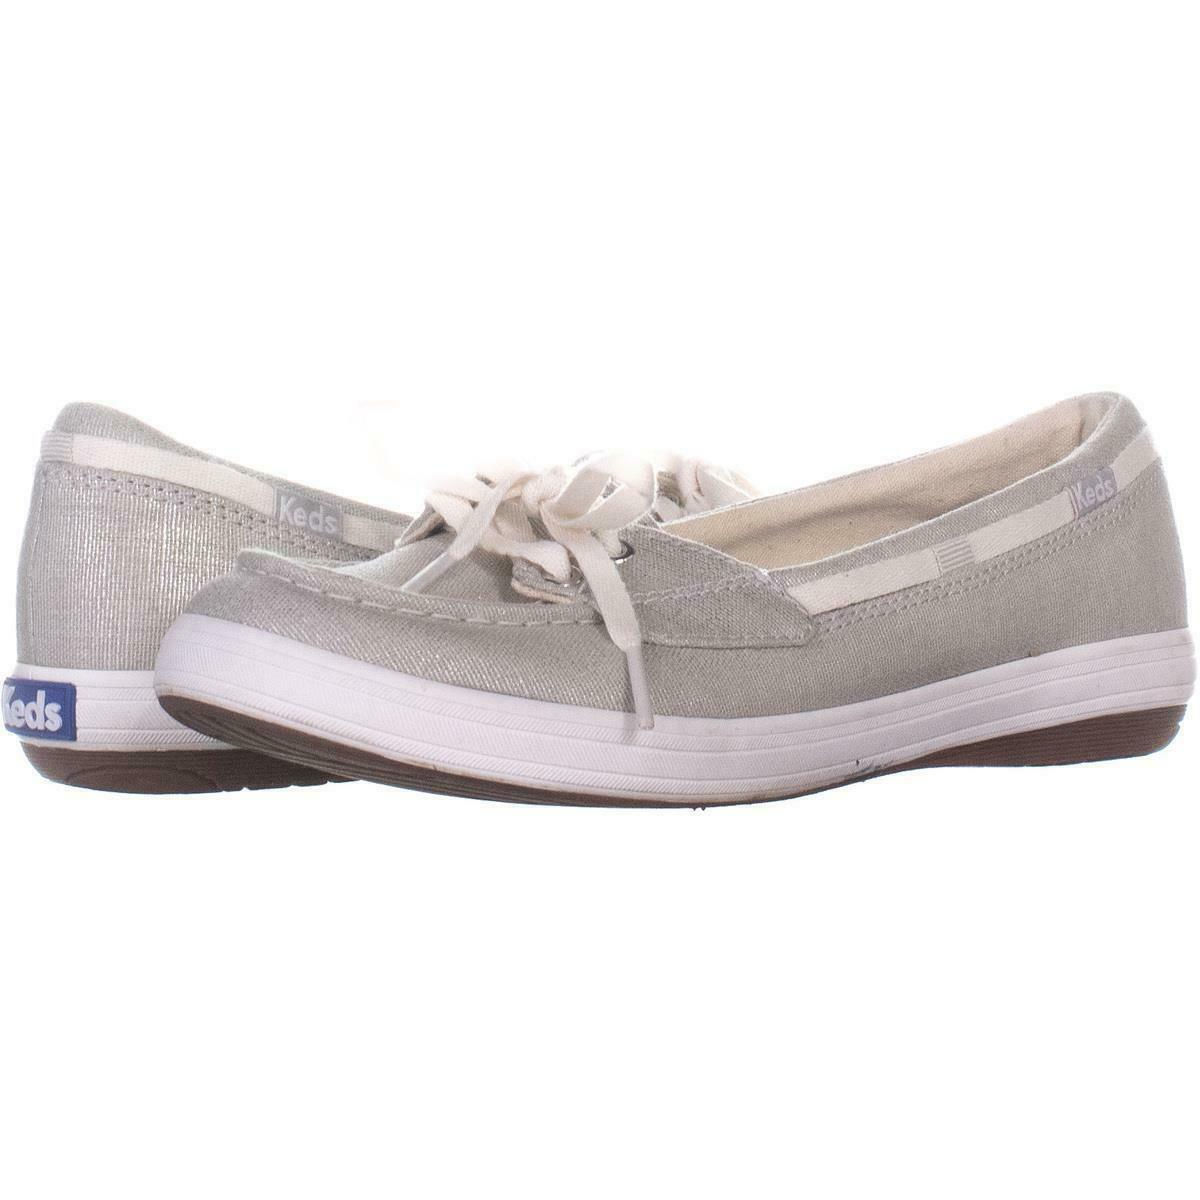 Keds Glimmer Lace Up Boat Shoes 553, Silver, 6.5 US / 37 EU